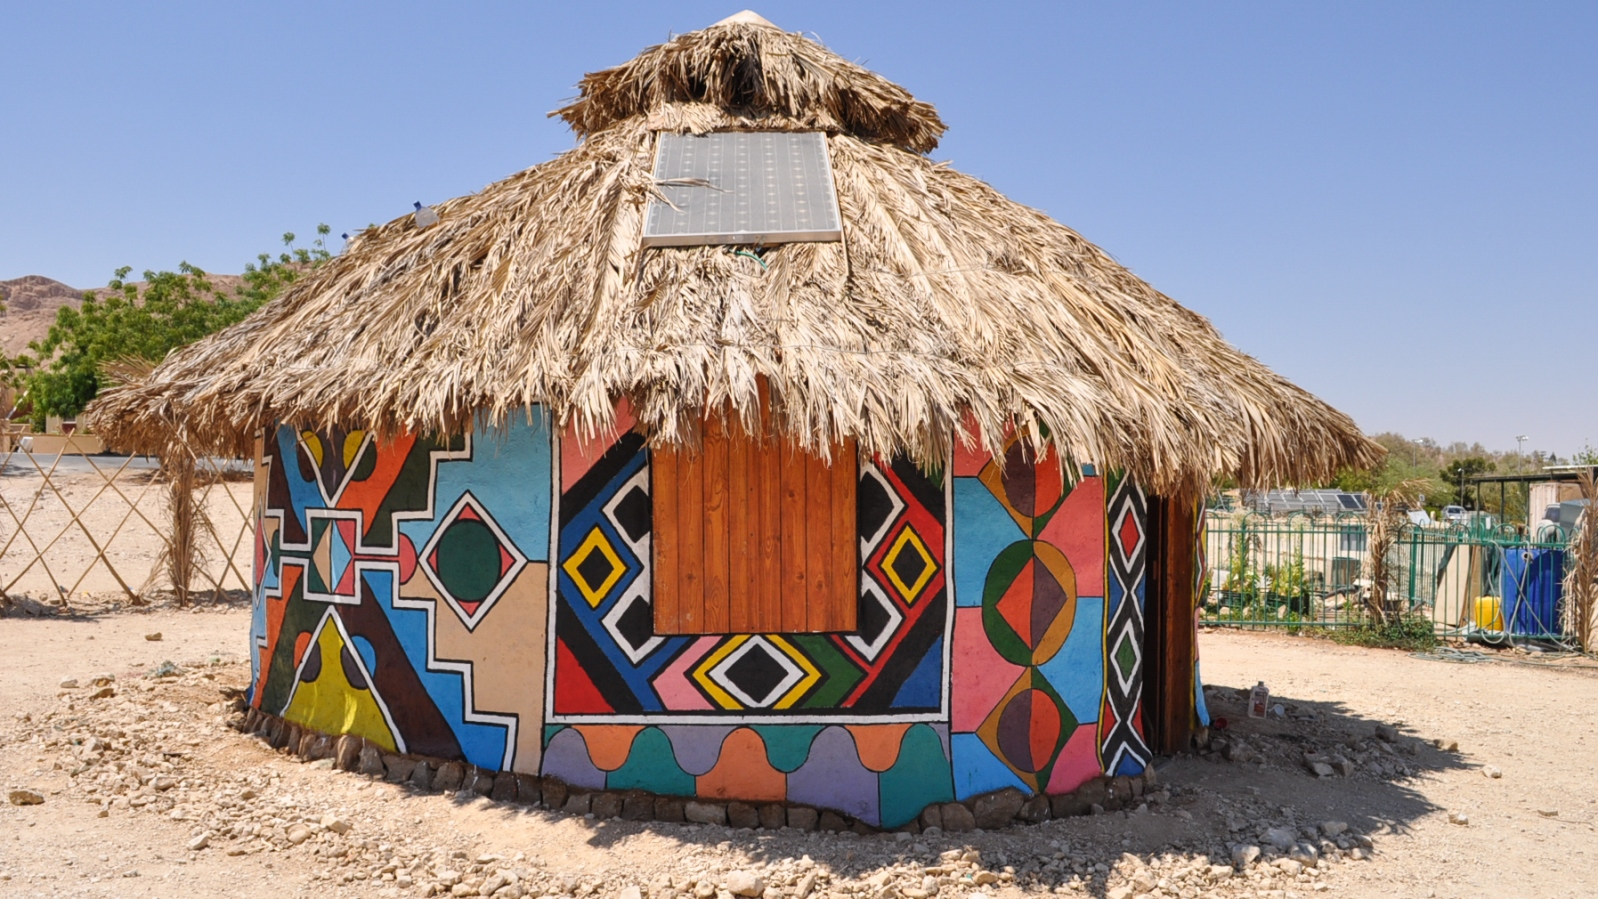 This rural hut is one of three structures in the Off-Grid Demonstration Village at Kibbutz Ketura. Photo courtesy of Arava Institute